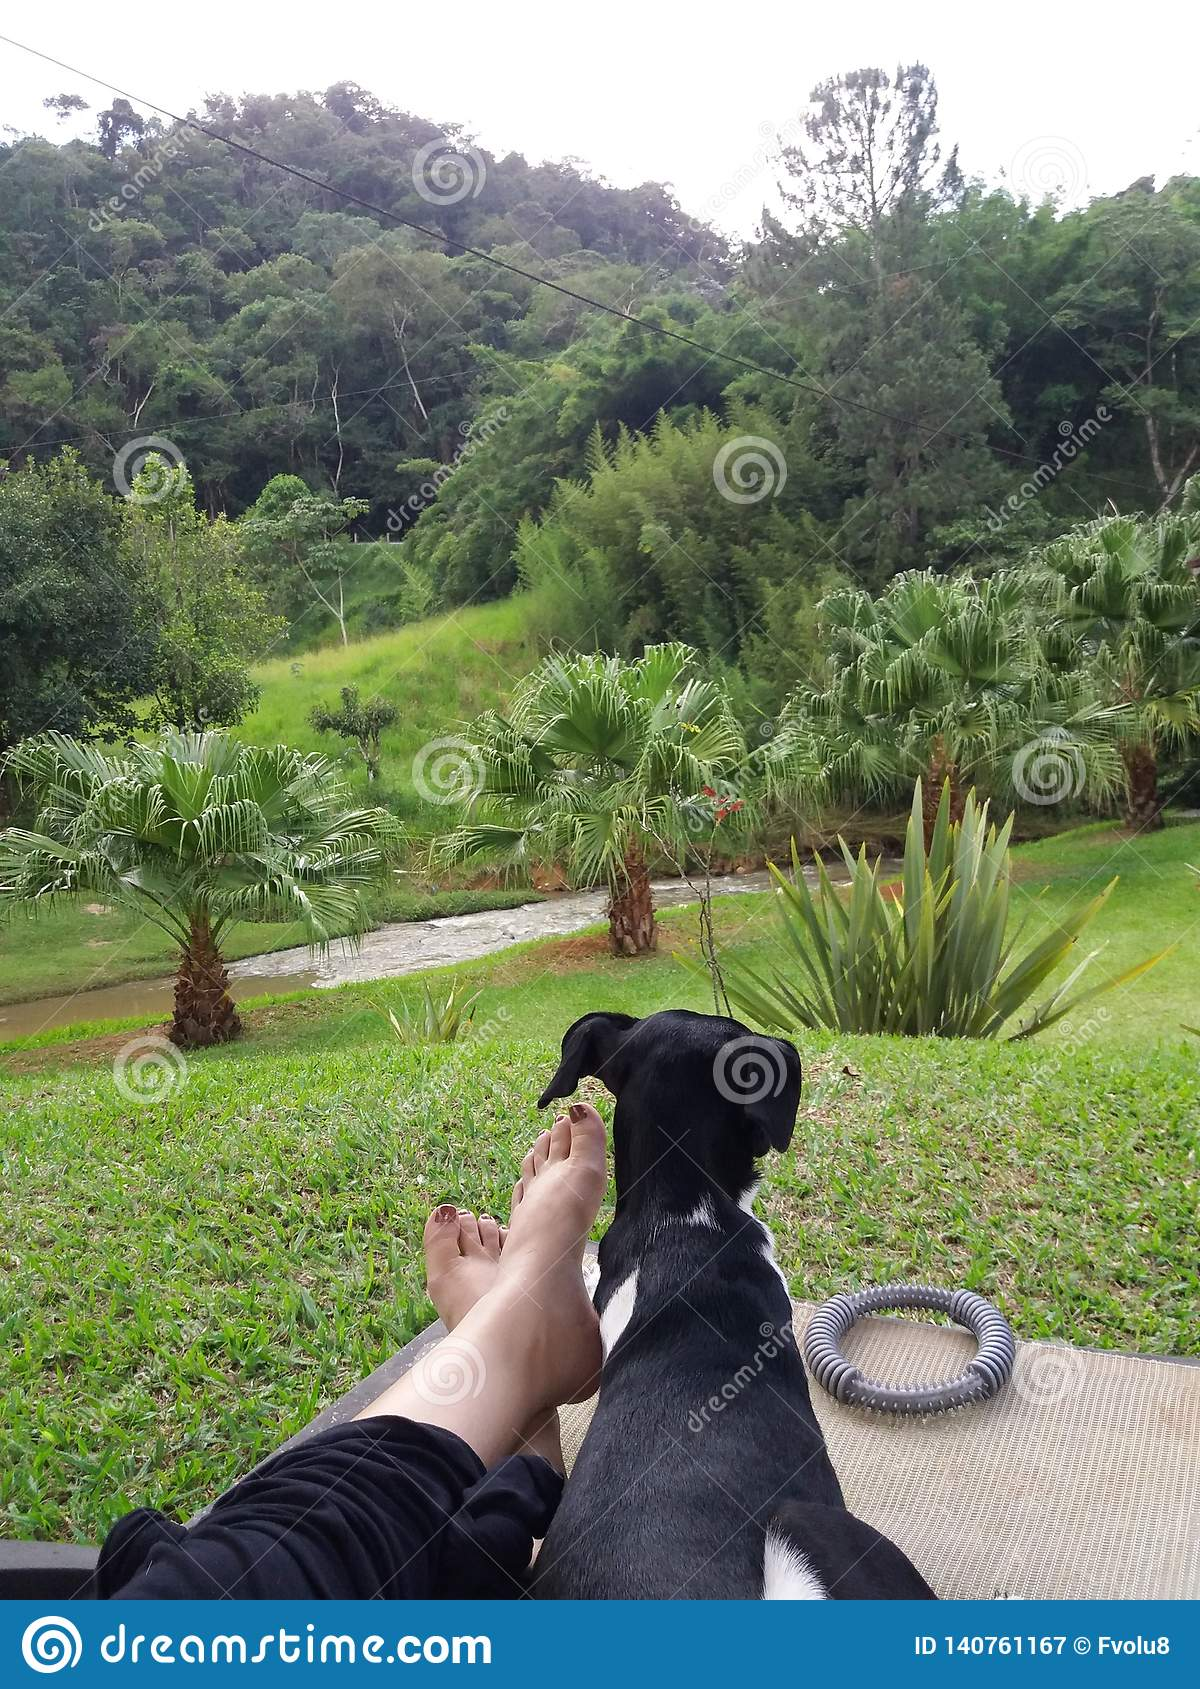 Terrier Brazilian black and white dog - lying quiet at the feet of the owner admiring the nature with beautiful lawn mountains an